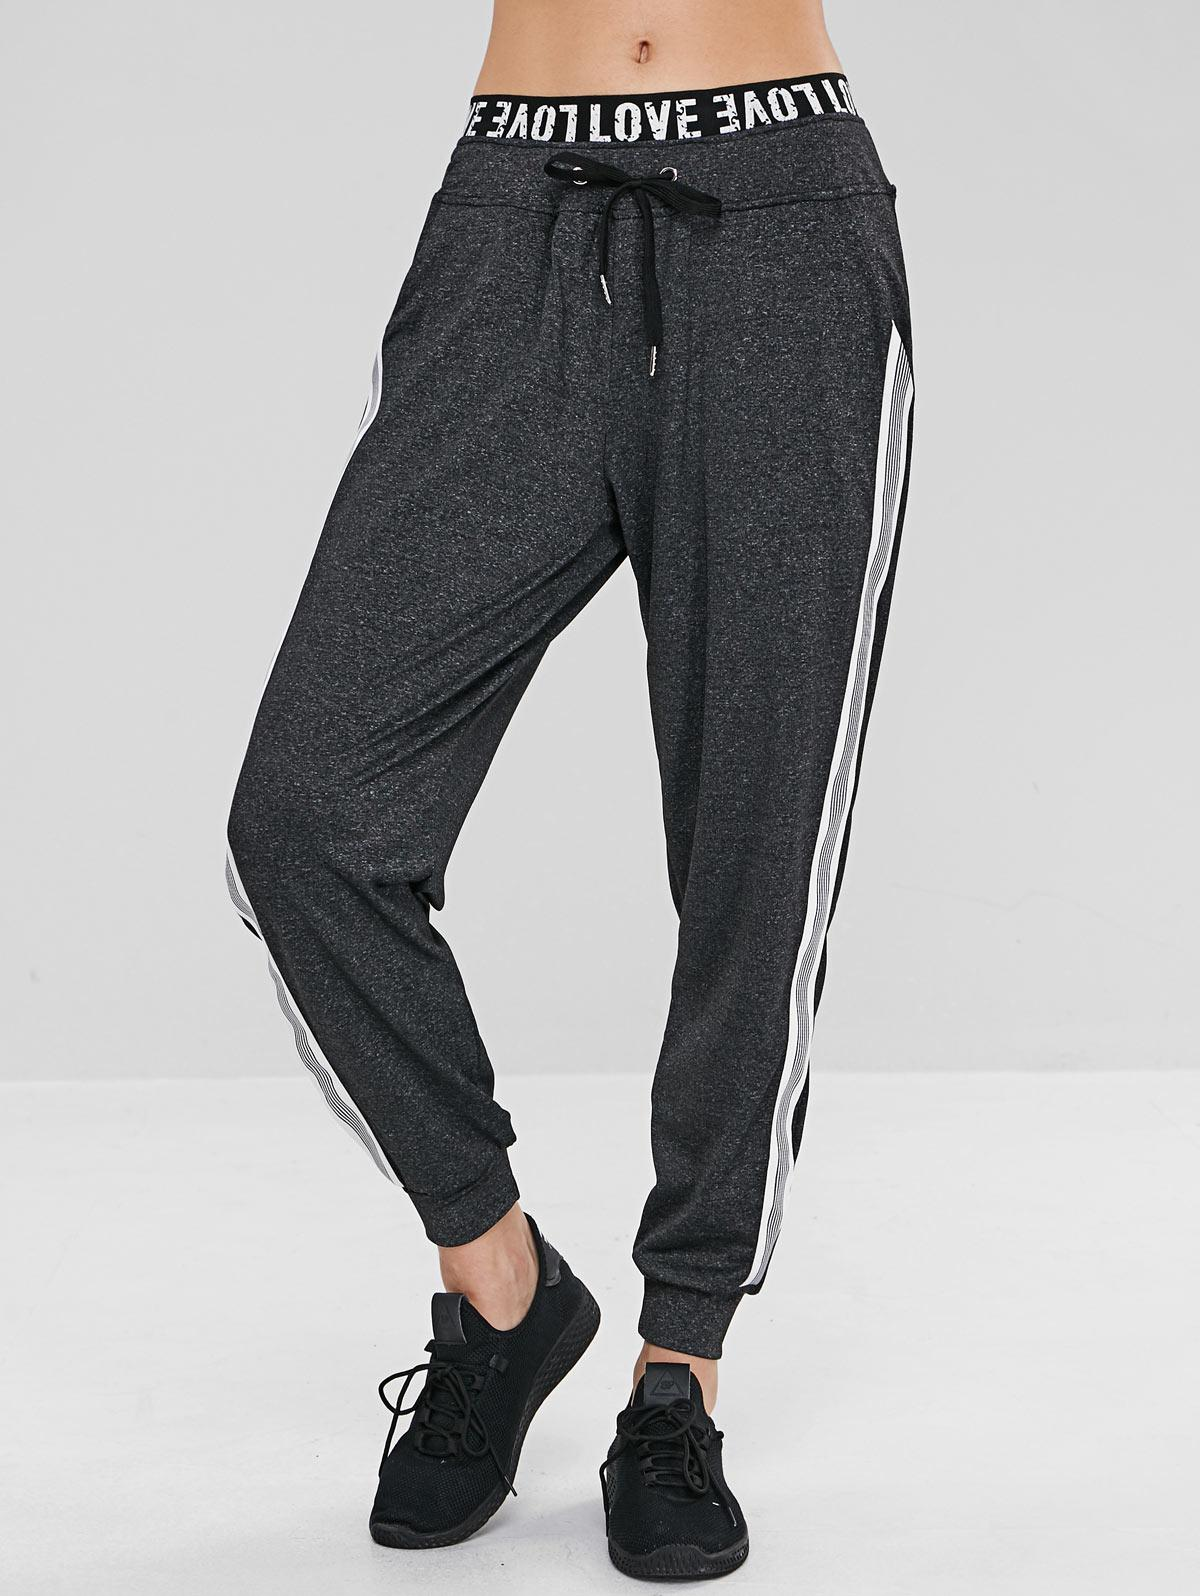 ZAFUL Striped Heather Drawstring Jogger Pants, Carbon gray